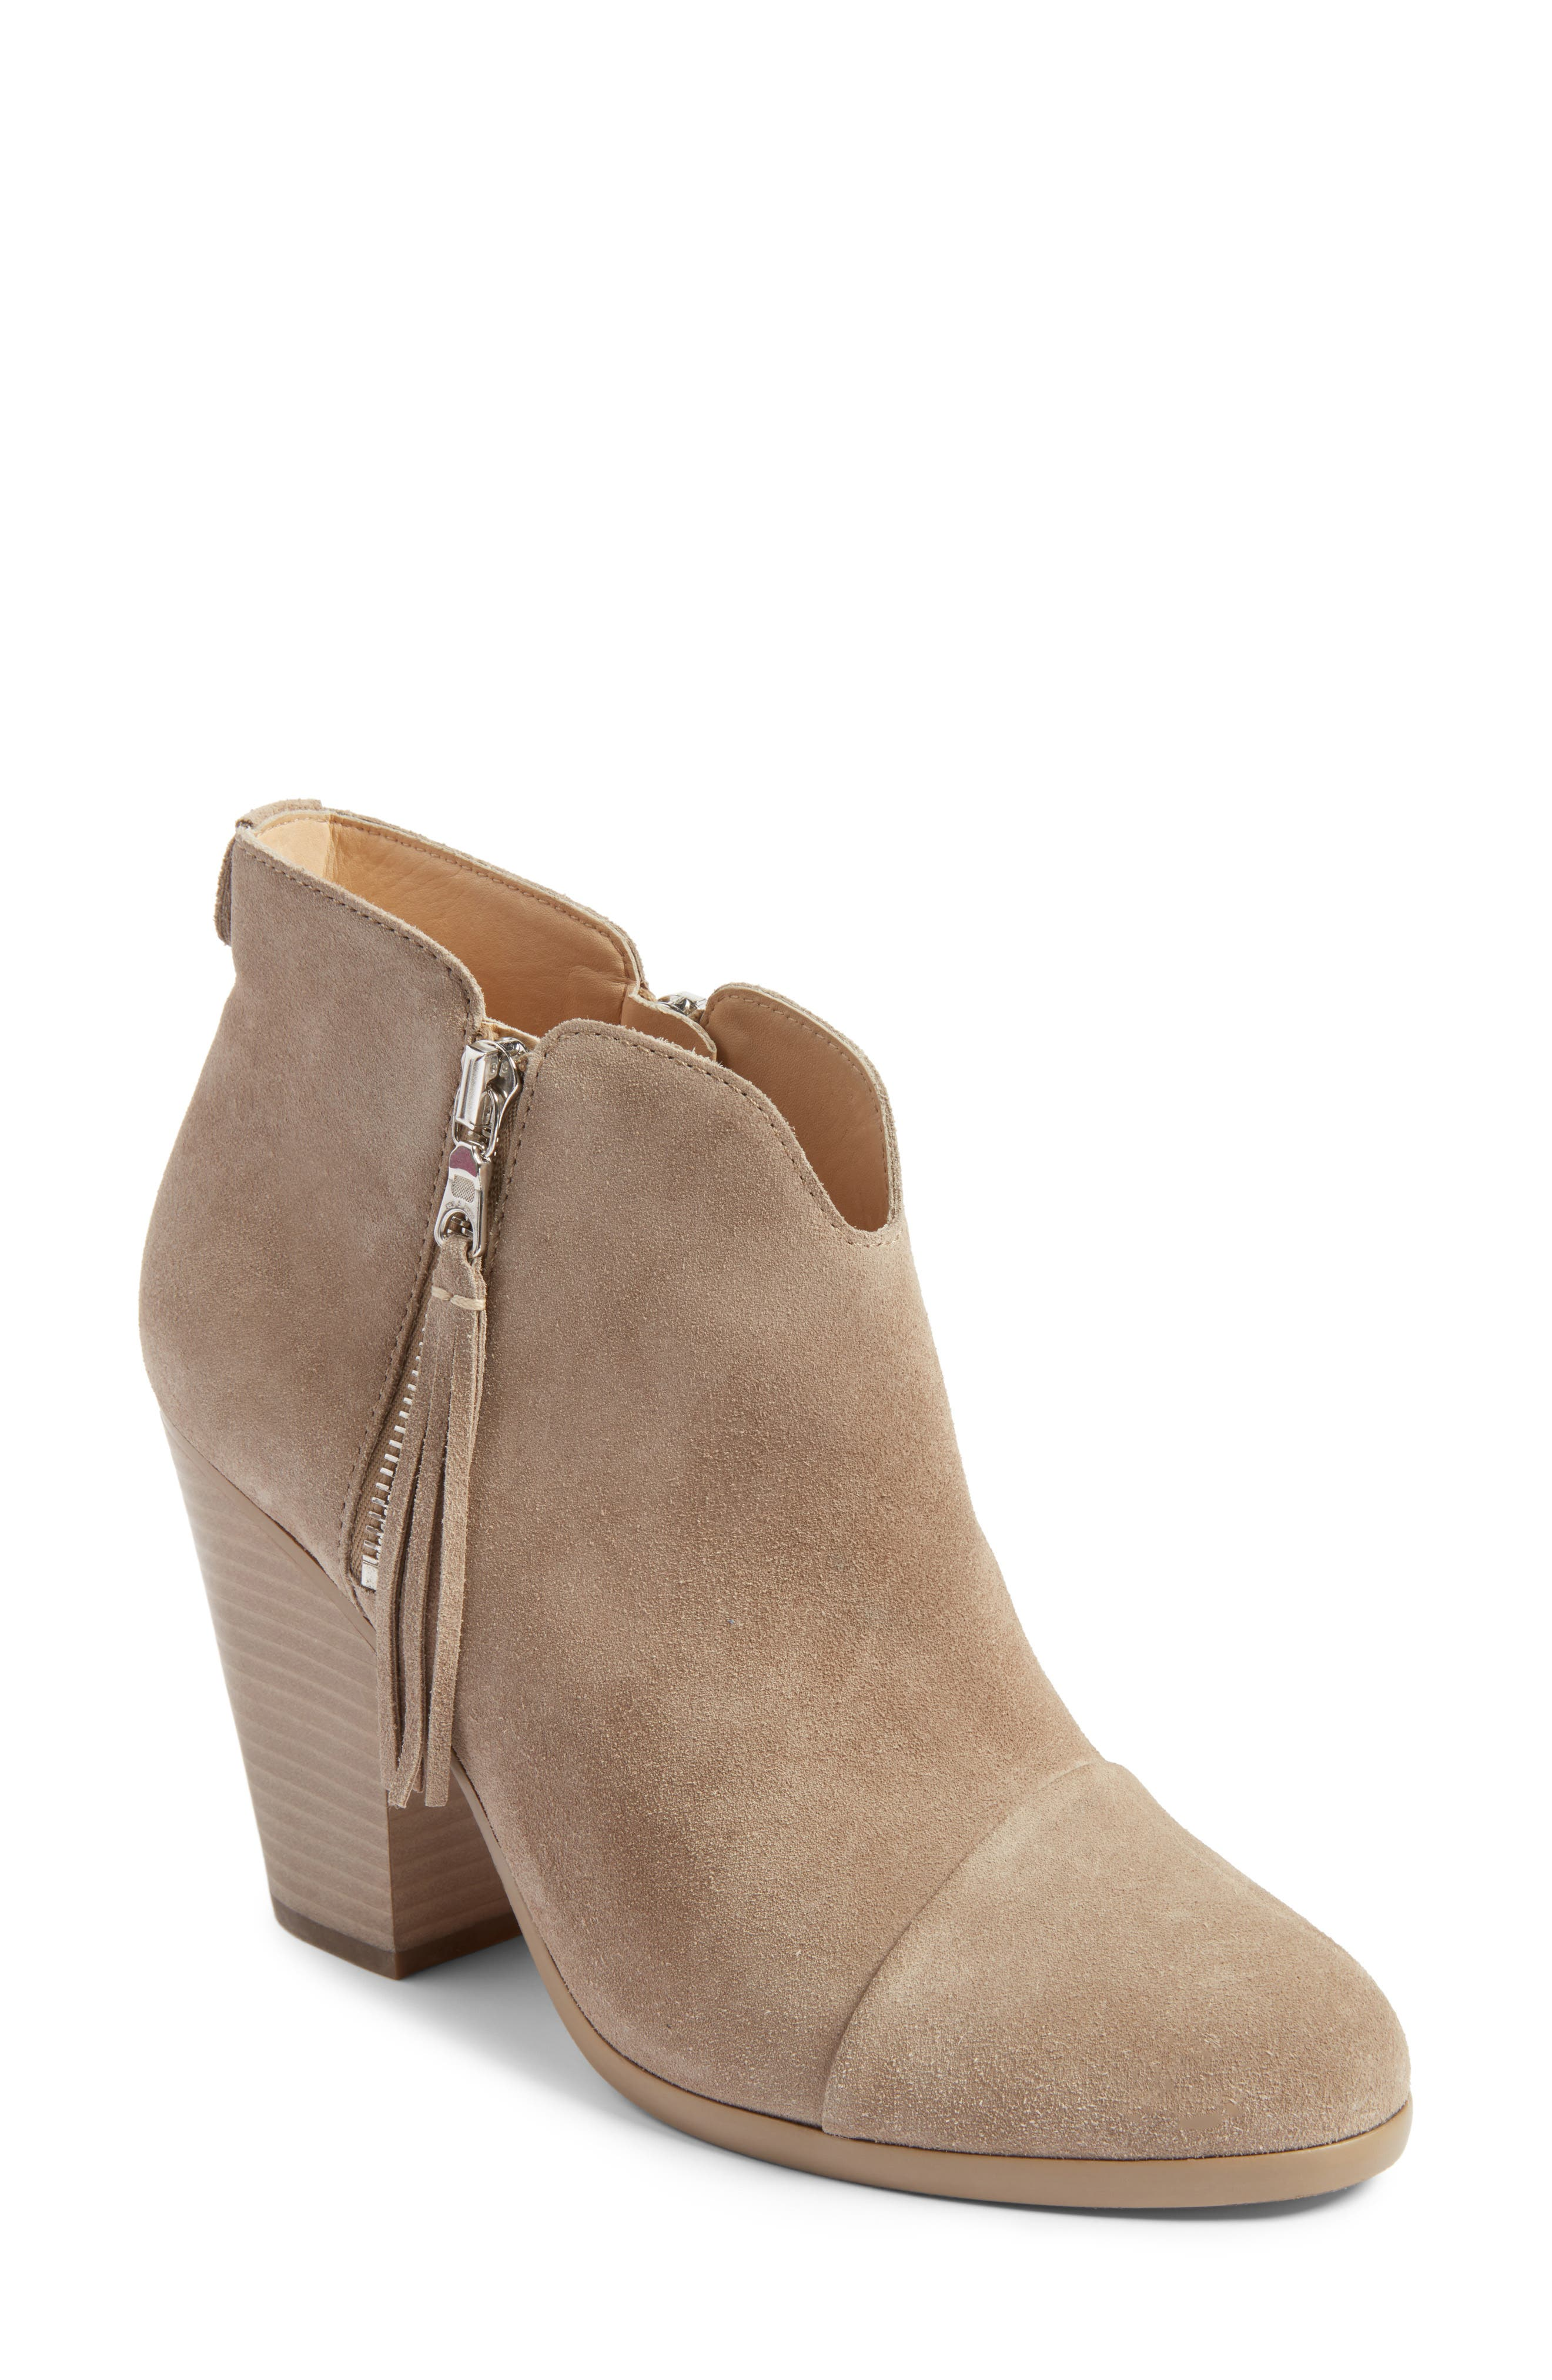 Main Image - rag & bone Margot Fringe Cap Toe Bootie (Women)